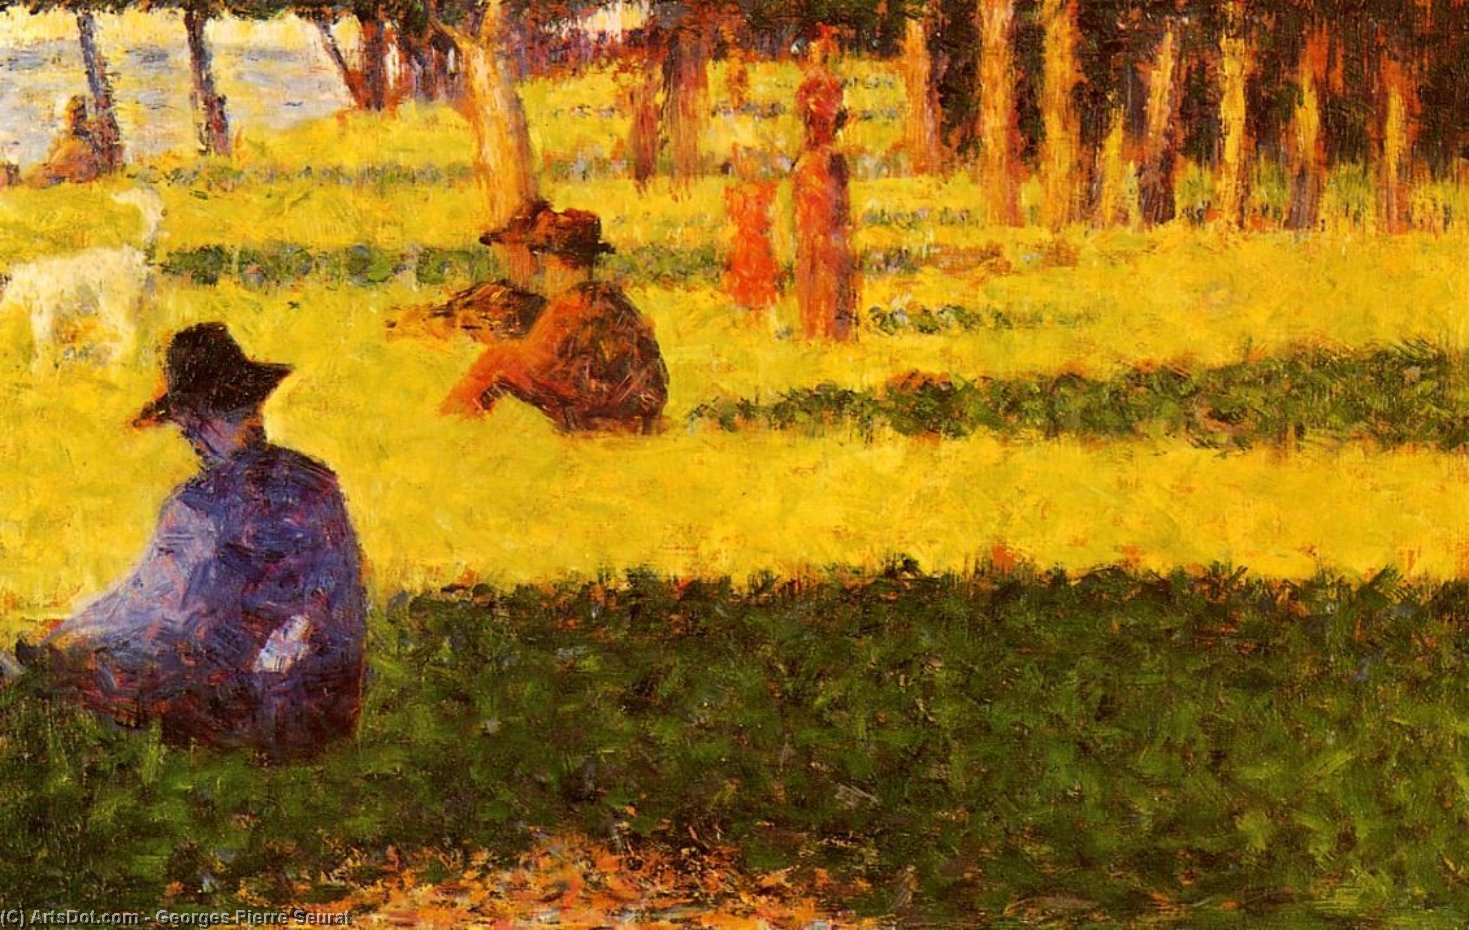 Wikioo.org - The Encyclopedia of Fine Arts - Painting, Artwork by Georges Pierre Seurat - White dog